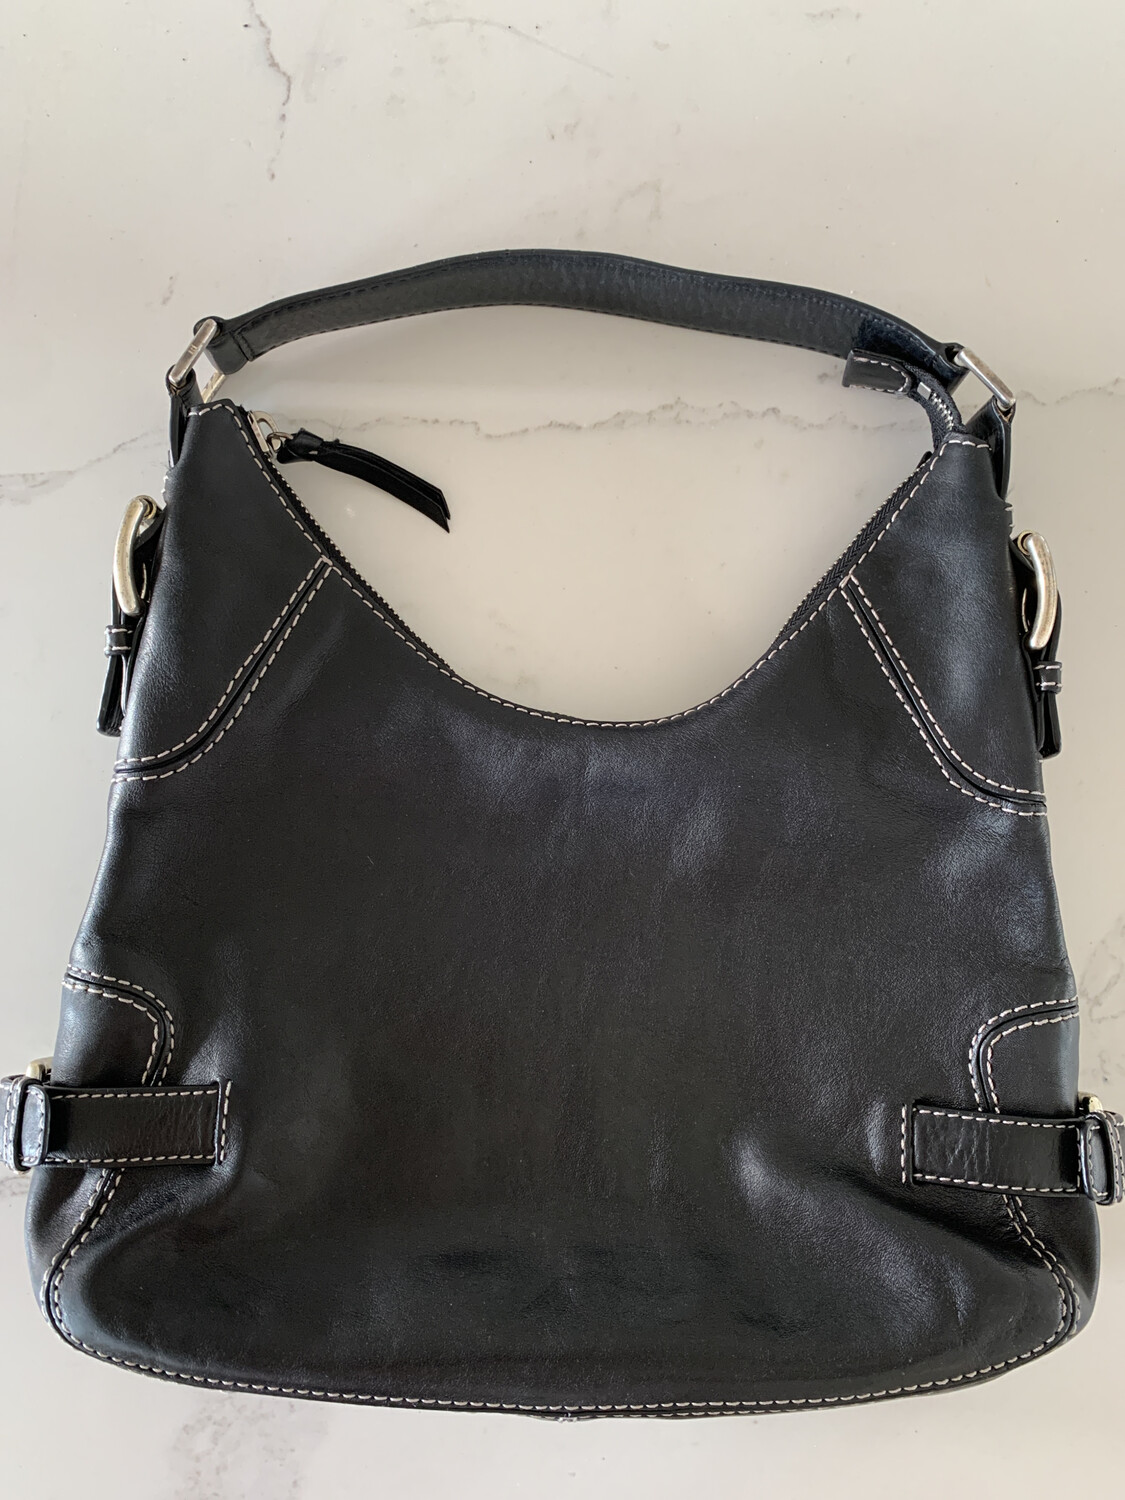 Michael Kors Black Leather Handbag w/ Silver Hardware